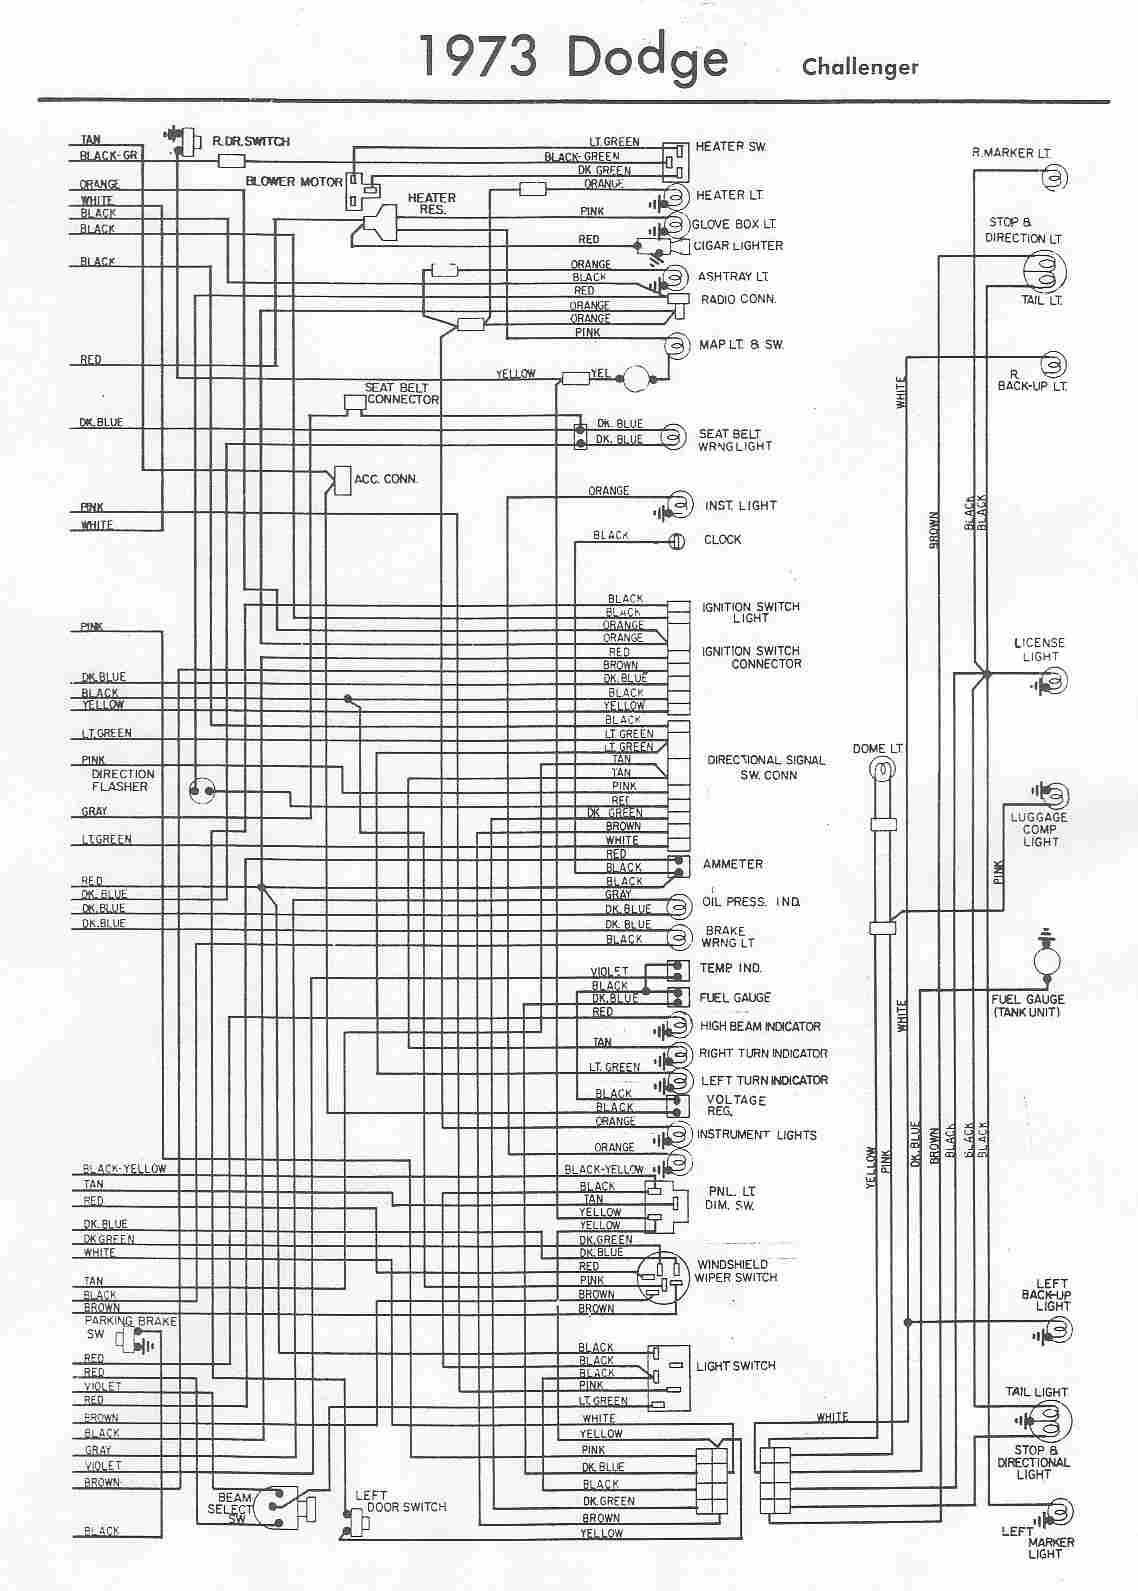 2017 Dodge Challenger Speaker Wire Diagram Subwoofer Wiring For Car Manuals Diagrams Pdf 6 Fault